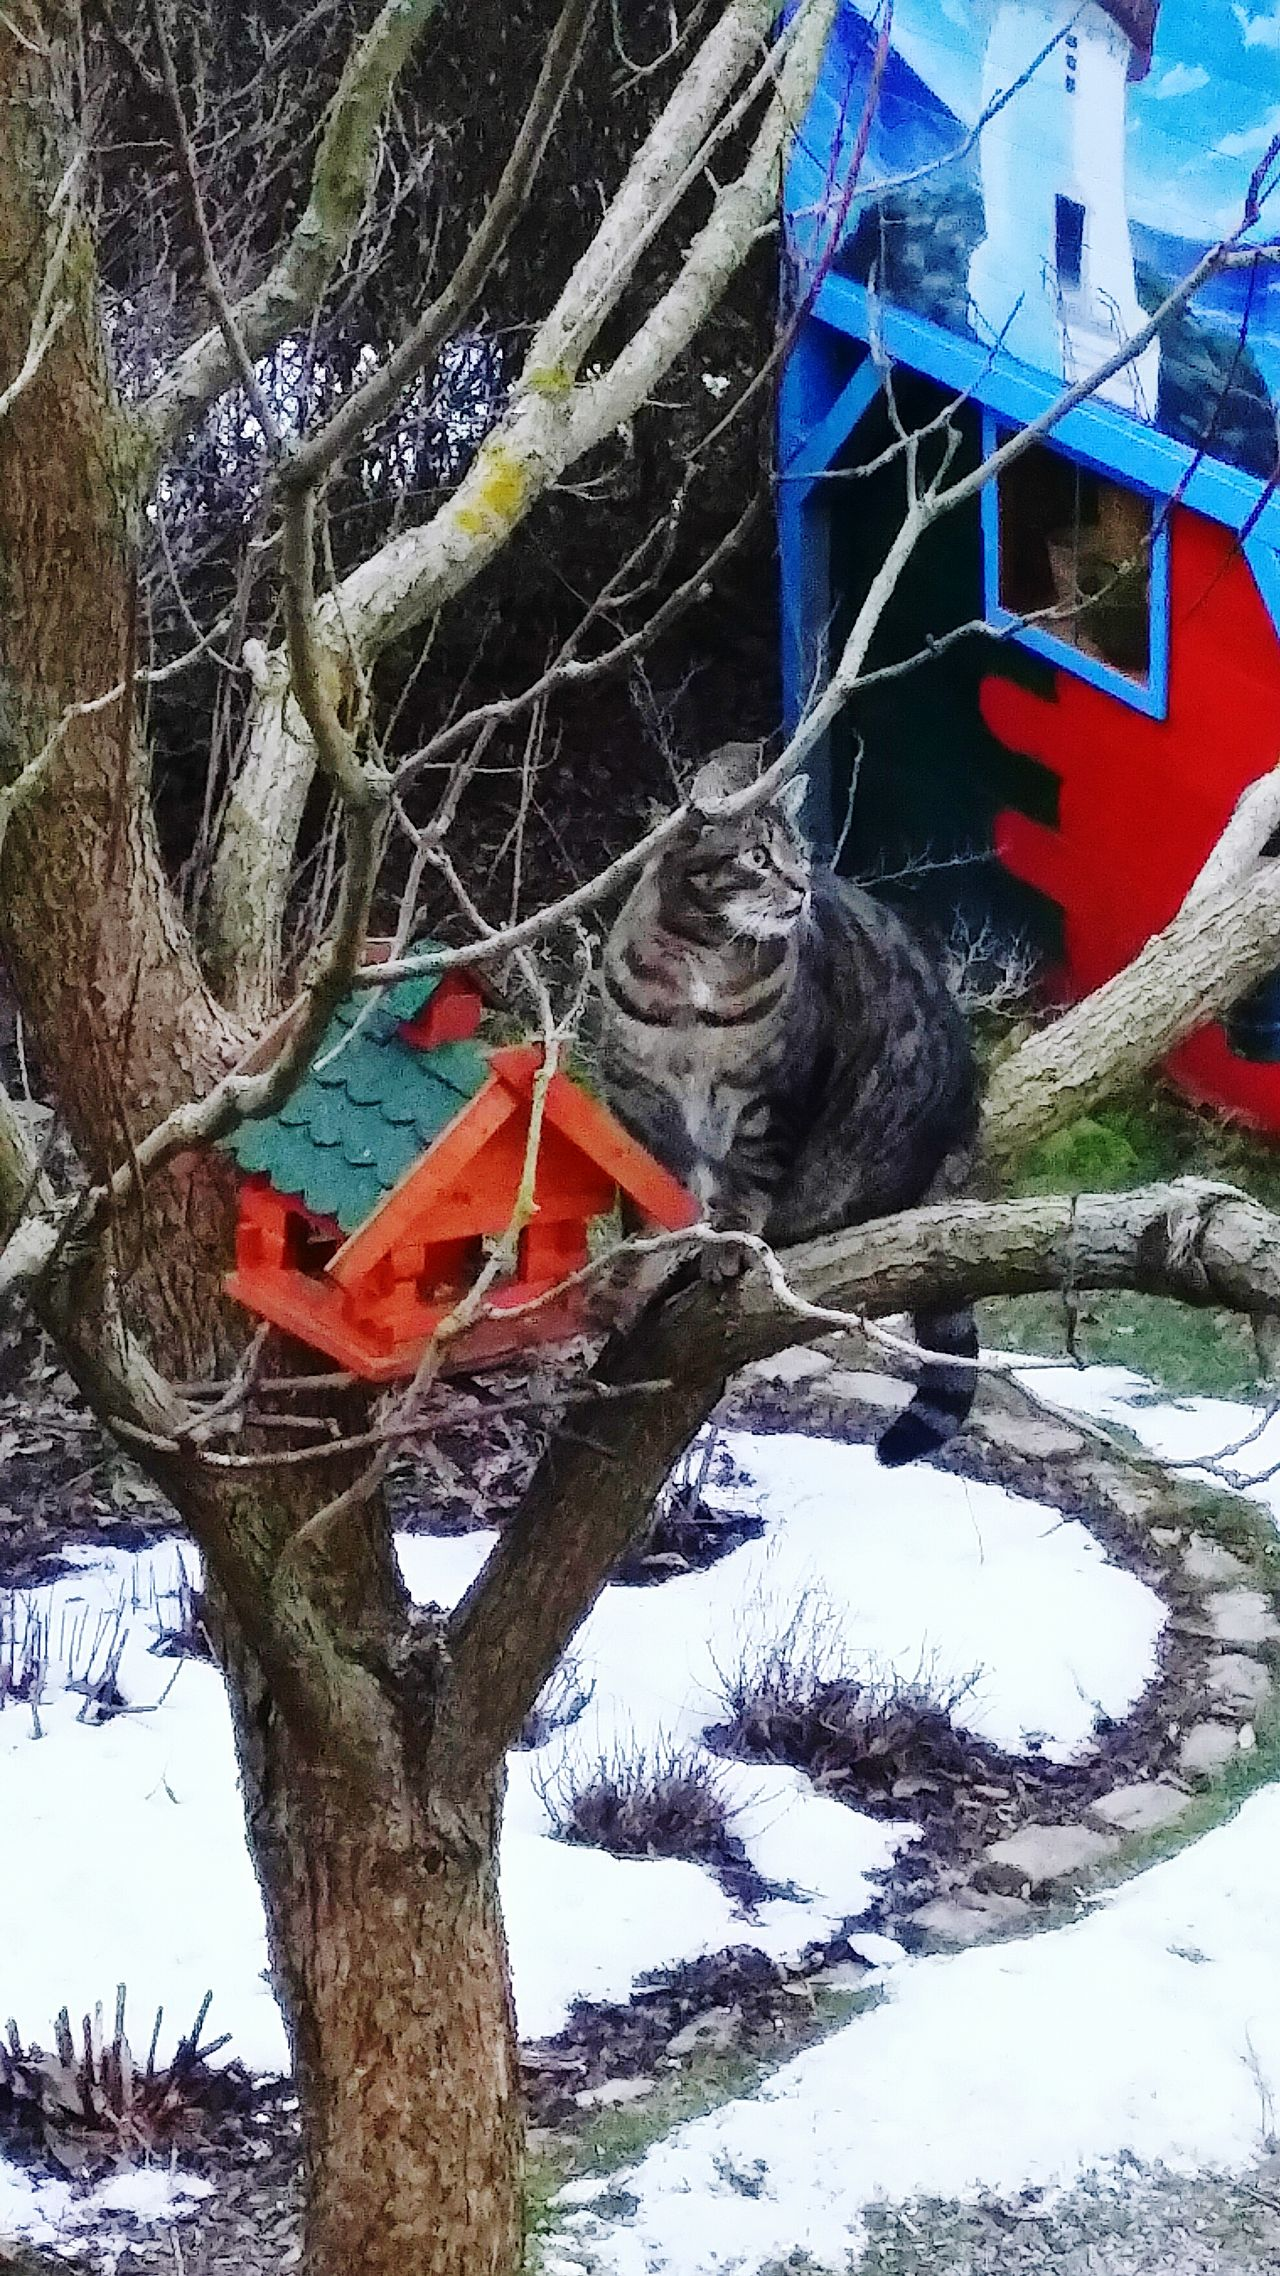 Crazy...our cat is waiting in the tree for the birds...für Anika, werde schnell gesund!! 😻😺🐈🐦😙💖 @Mandy173 day Outdoors Germany My Garden @my Home Ladyphotographerofthemonth Focus On Foreground The Purist (no Edit, No Filter) Cats 🐱 Cat Domestic Cat Cats Of EyeEm Catsoneyeem Animal Wildlife Animal Themes One Animal Tree